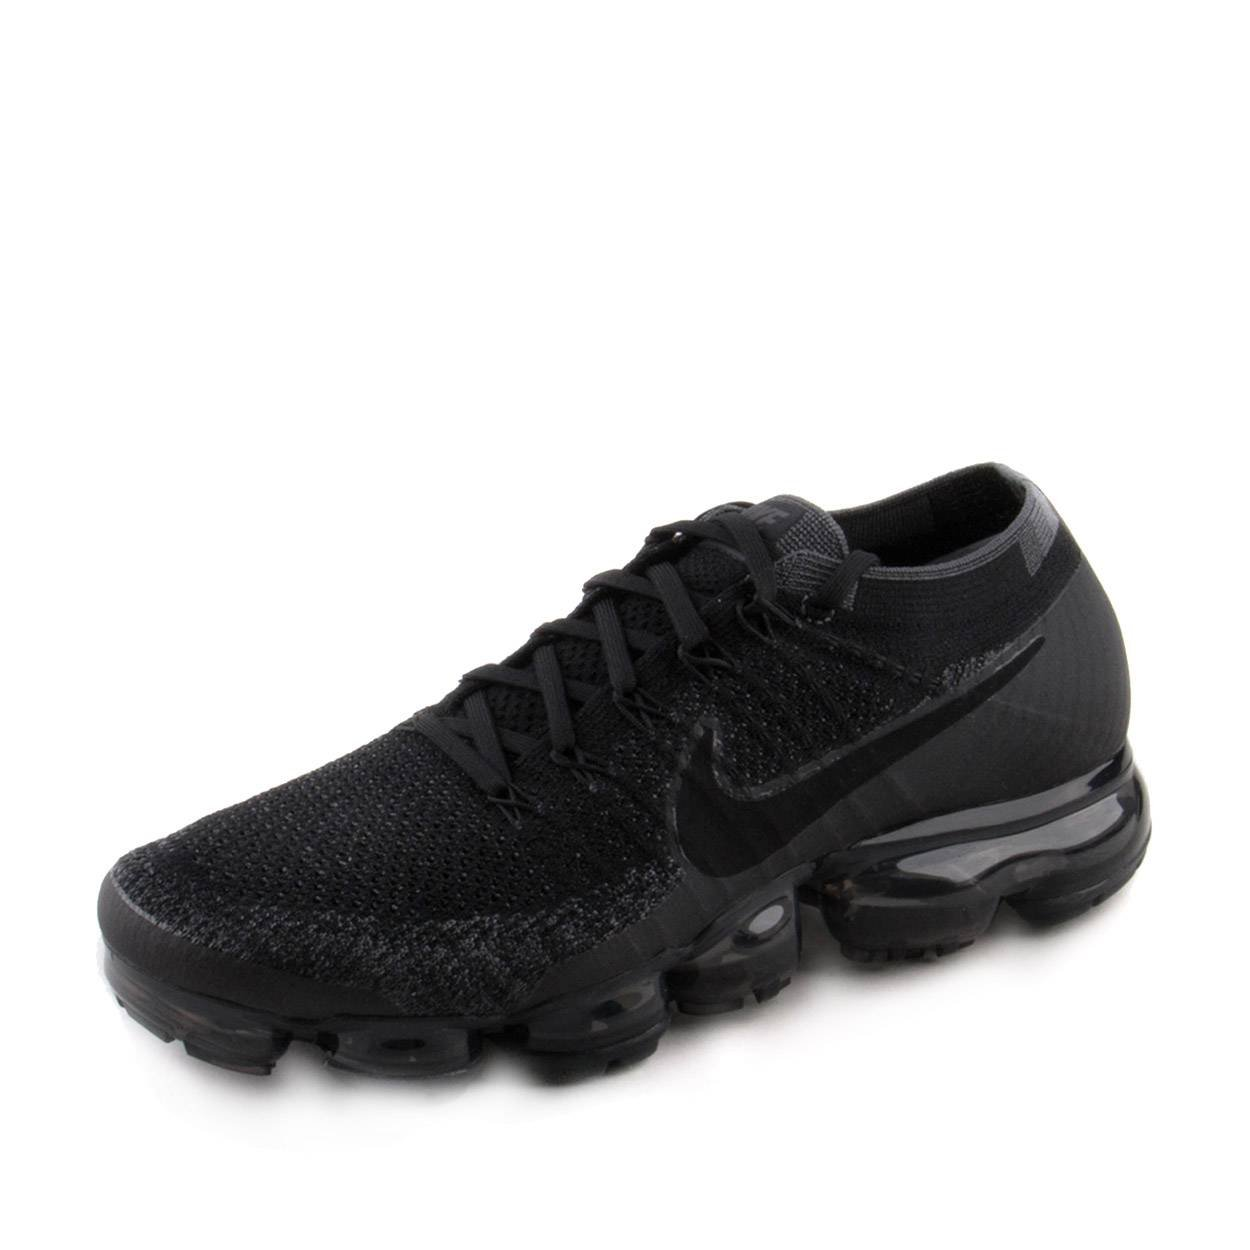 Galleon - Nike Air Vapormax Flyknit - 849558 007 c1b0ae199167